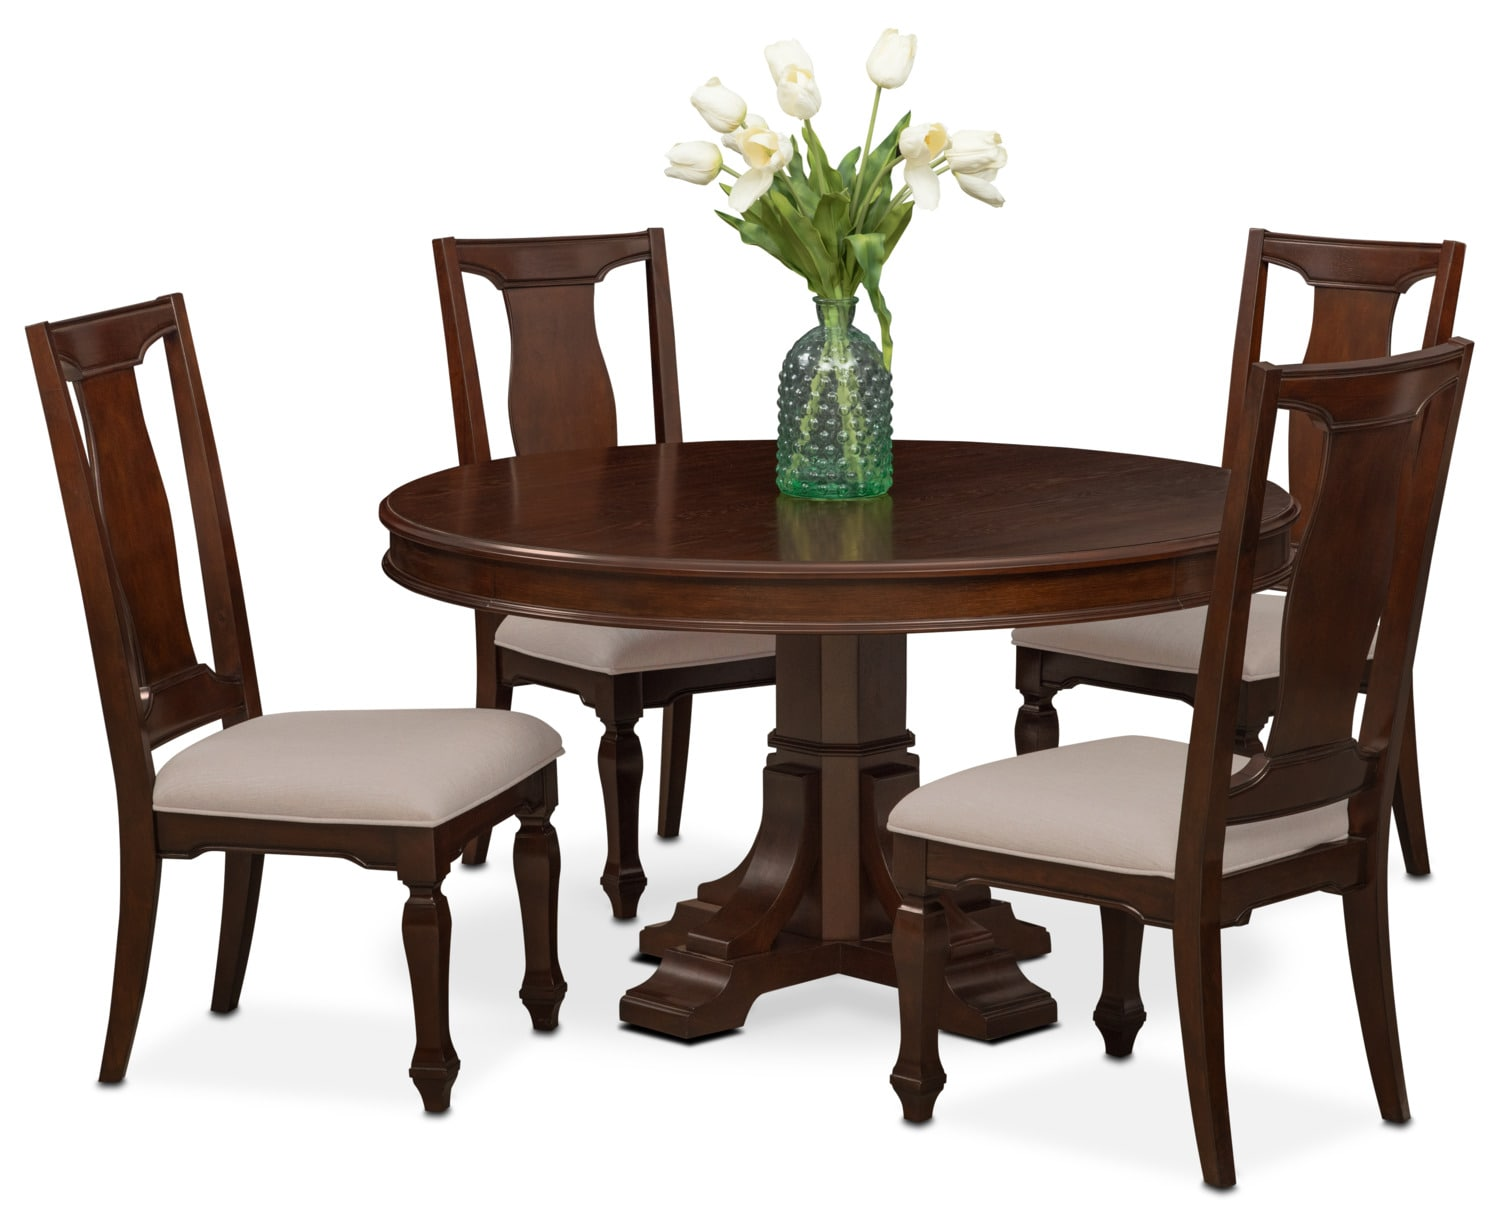 Vienna Round Dining Table and 4 Side Chairs - Merlot